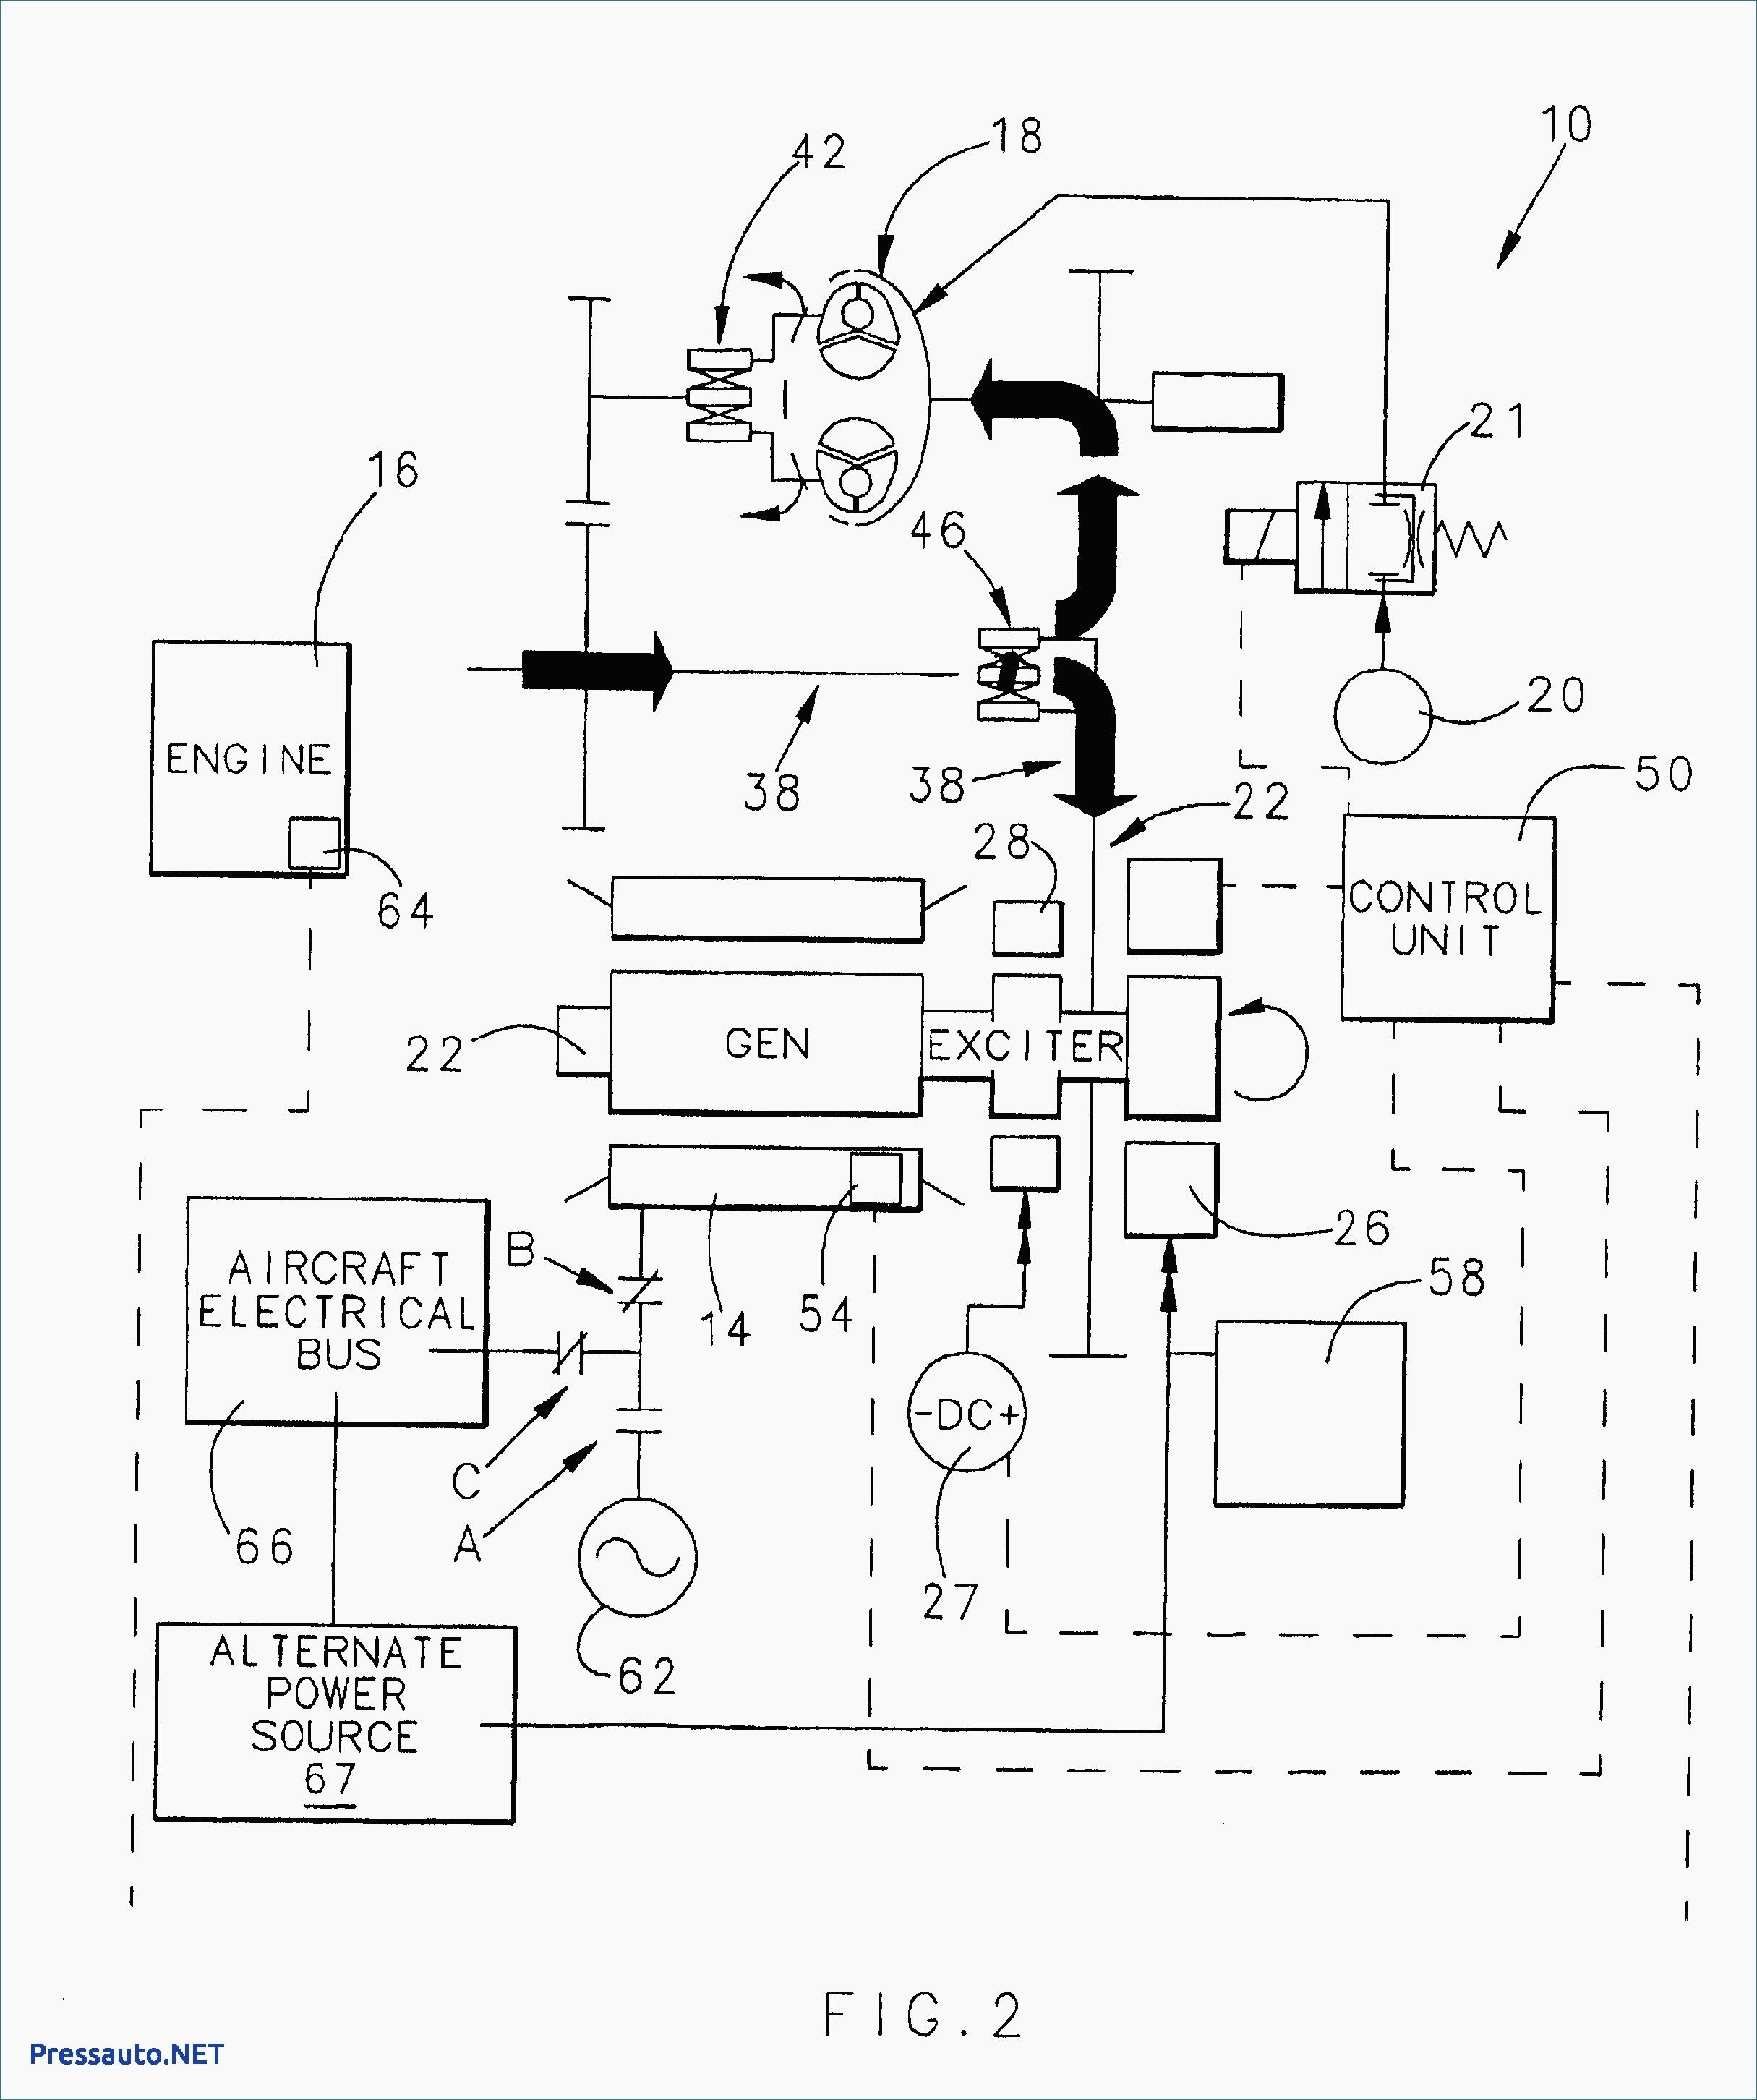 Pto Switch Wiring Diagram Makita Angle Grinder Wiring Diagram Jig